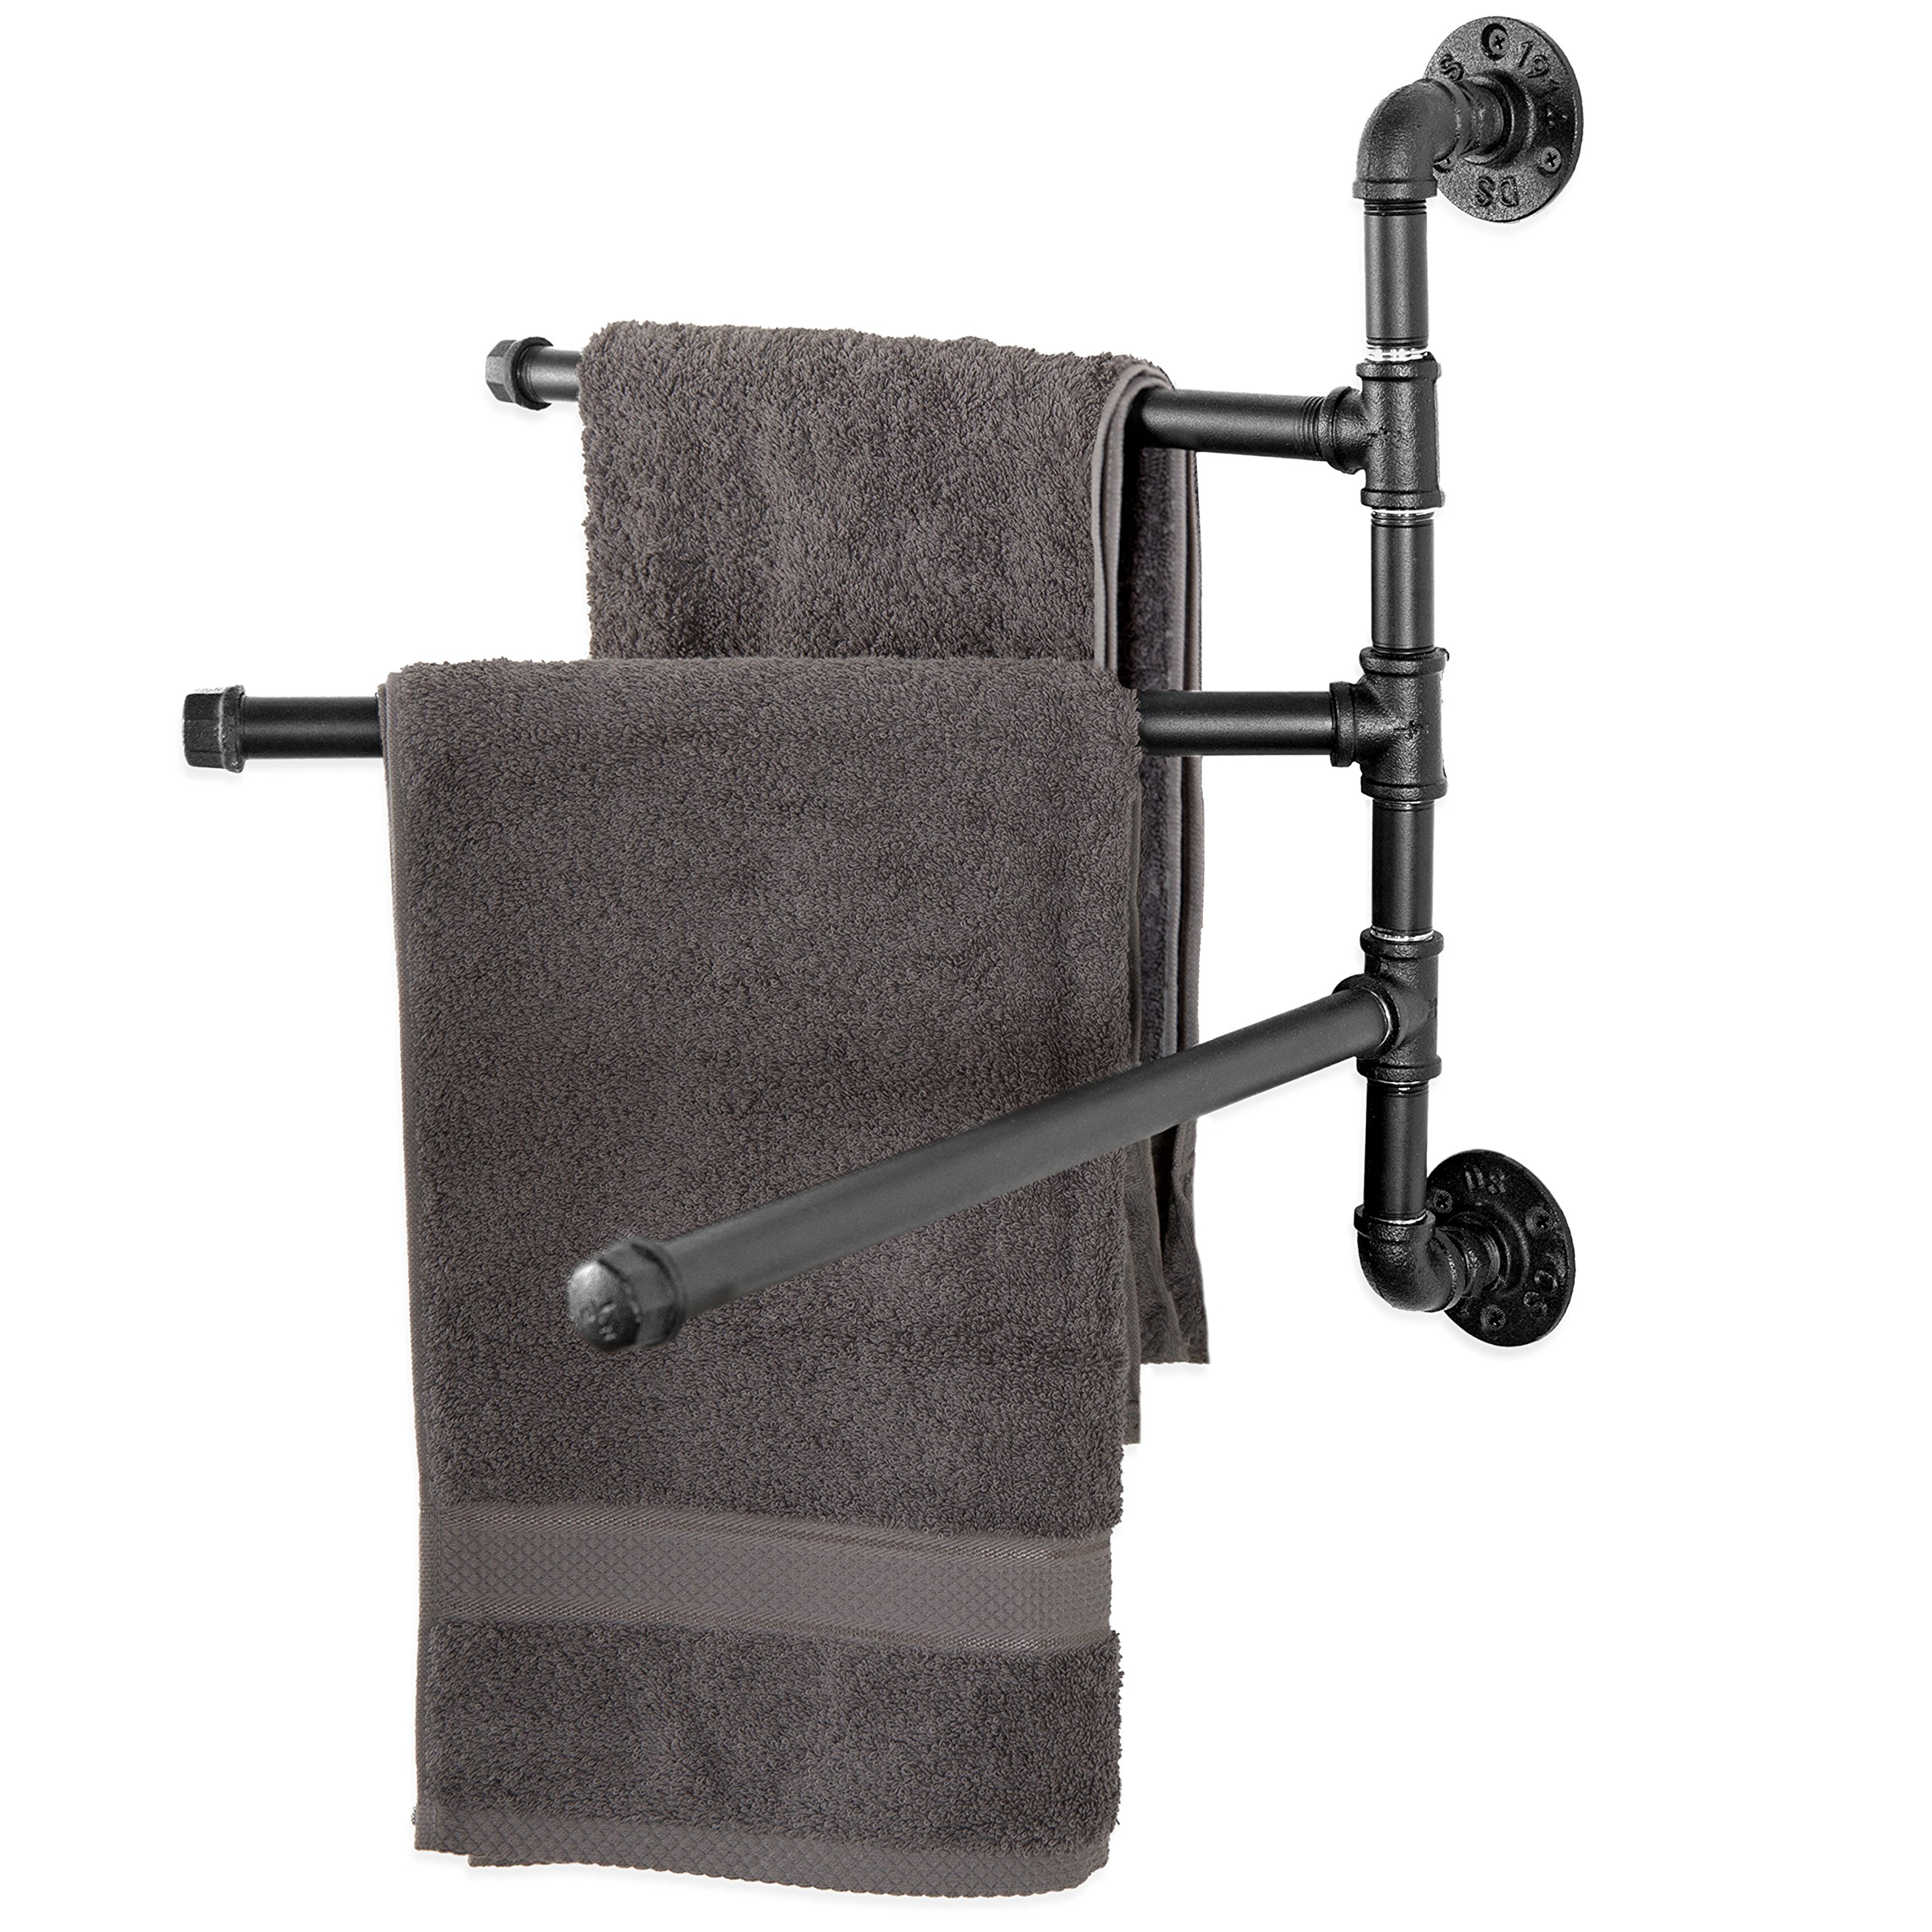 MyGift Wall-Mounted Industrial Pipe 3-Arm Swivel Towel Bar Rack, Black by MyGift